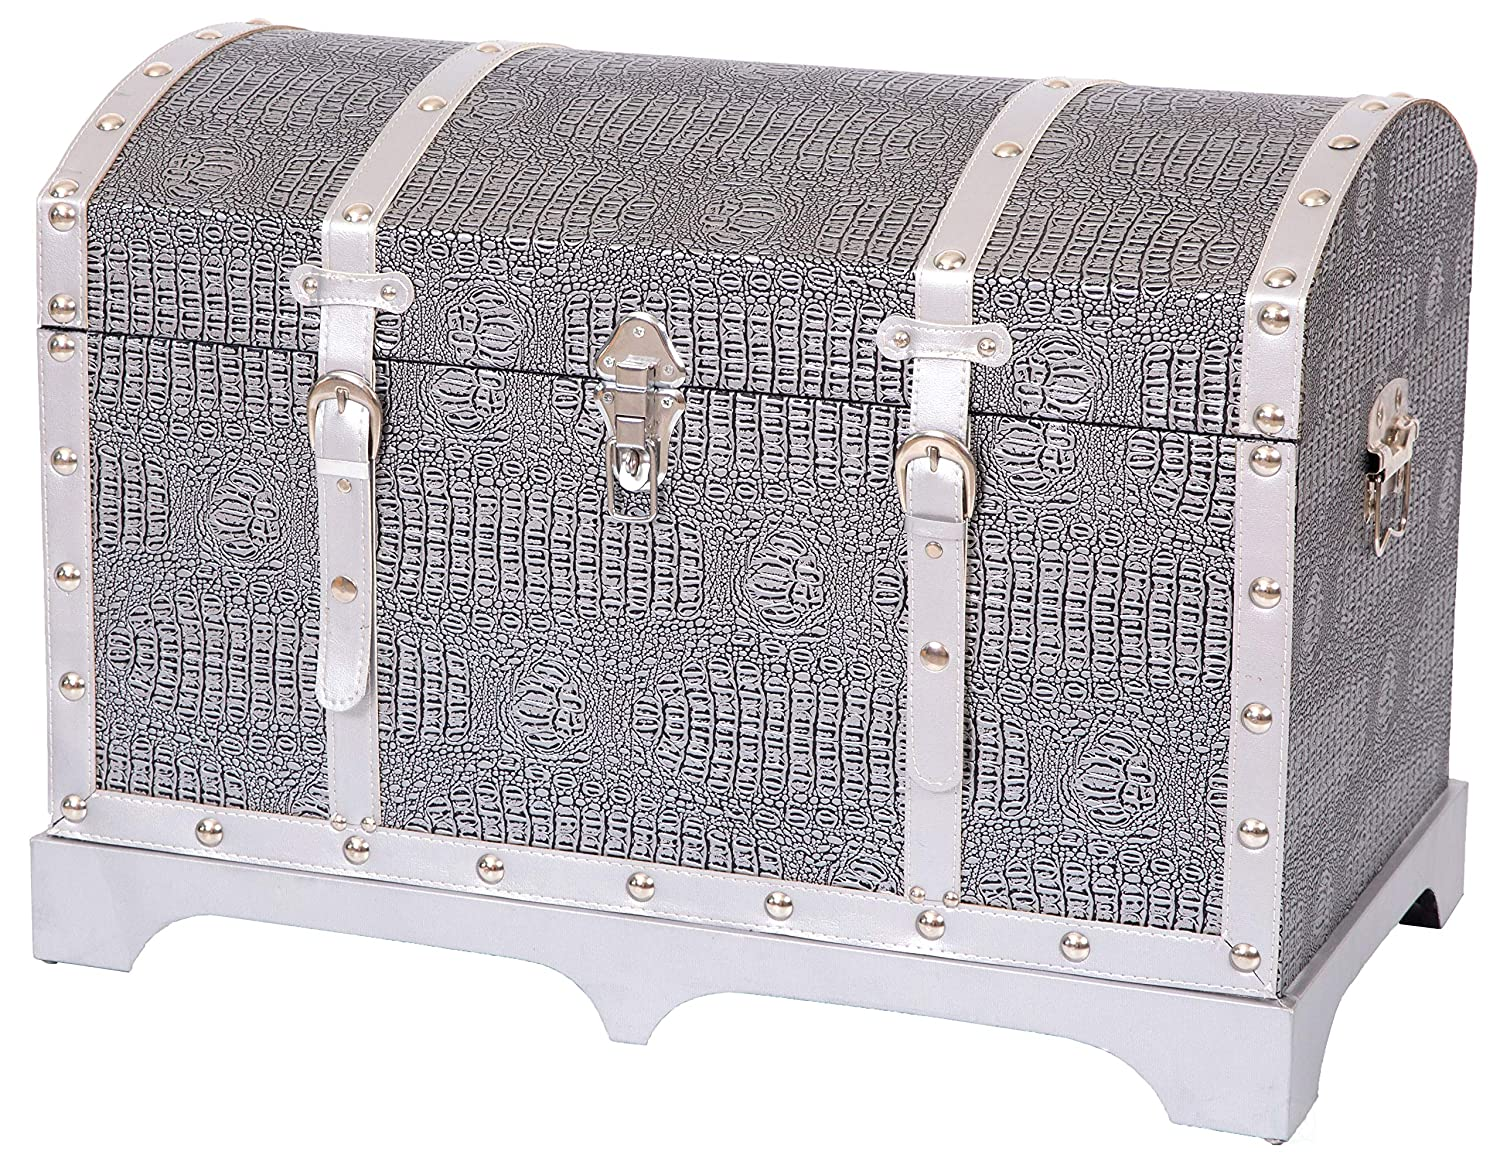 Vintiquewise QI003409.L Vintage Faux Crocodile Leather Metallic Silver Trunk with Belted Strap, 26.75  W x 15.75  D x 19.25  H